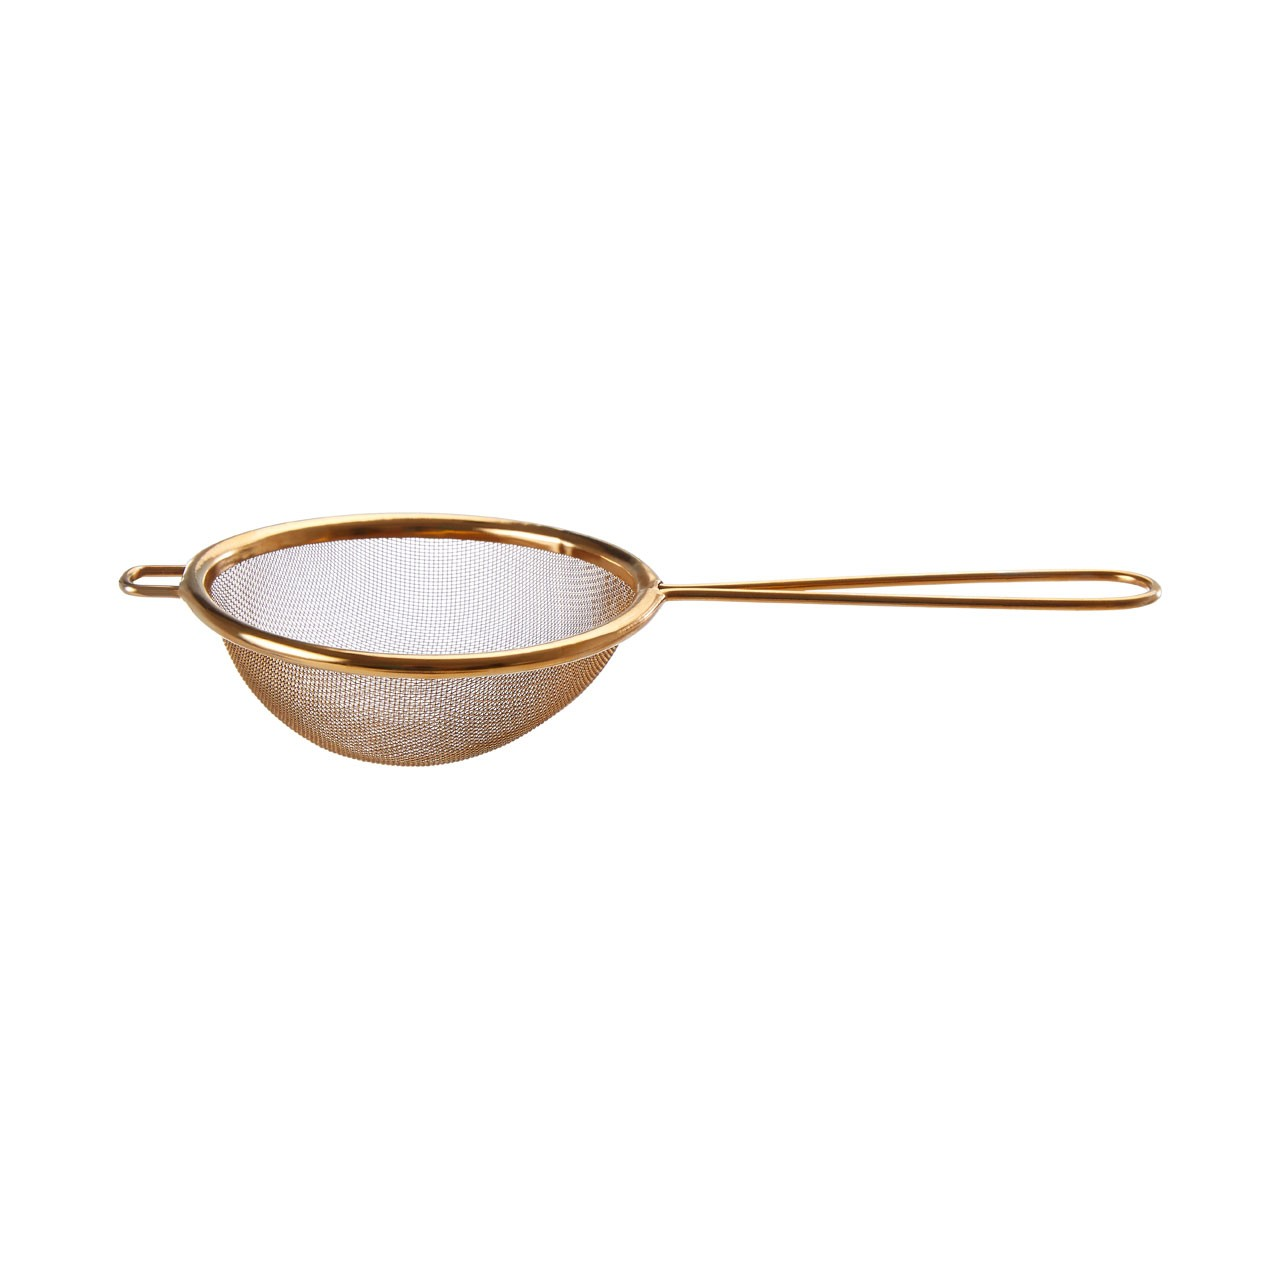 Alchemist Gold Finish Round Sieve